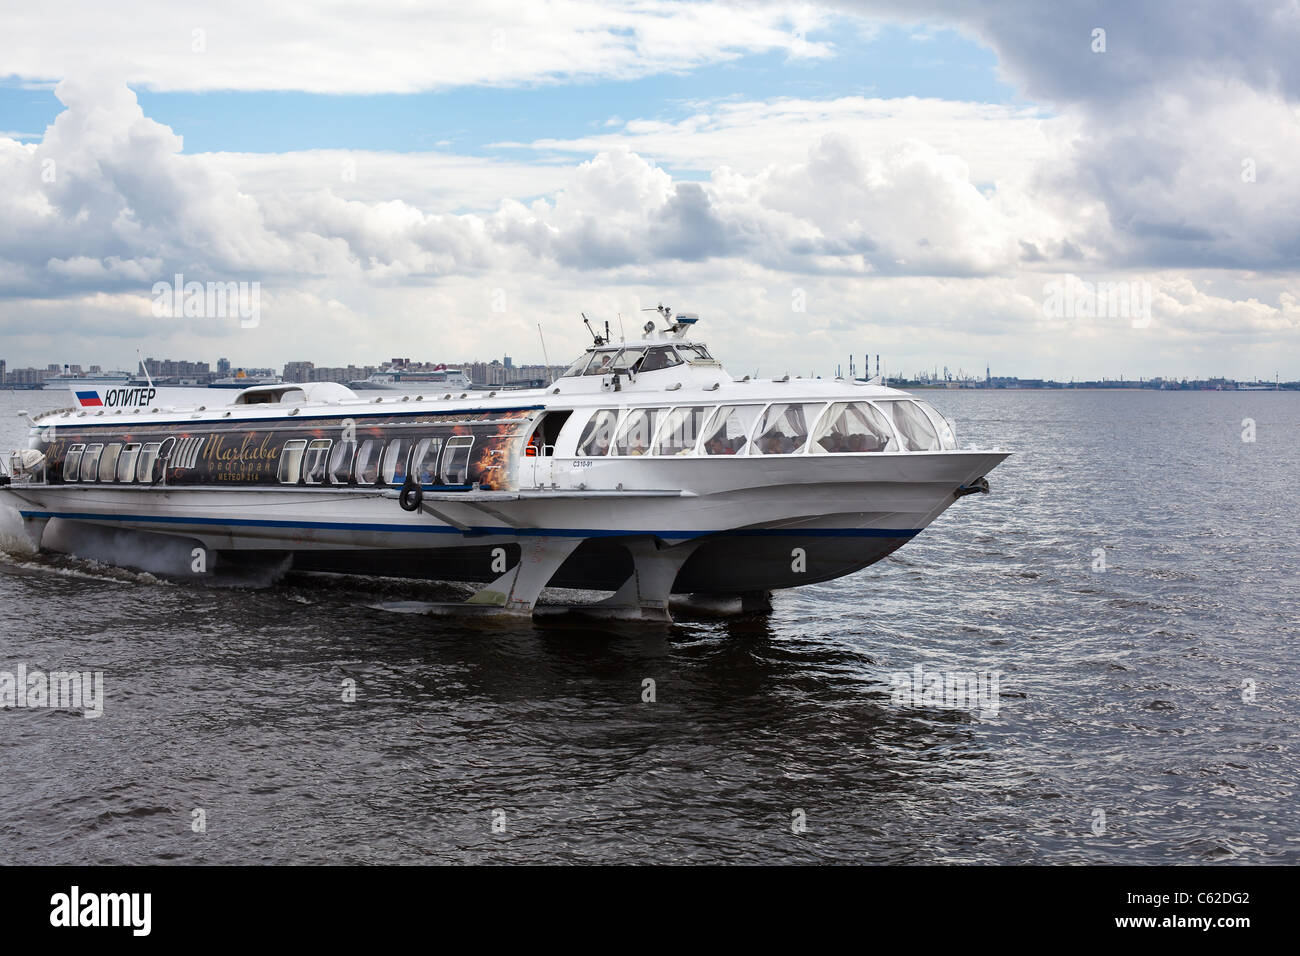 Hydrofoil Boat In The Waters Of The Neva River St Petersburg Stock Photo Alamy